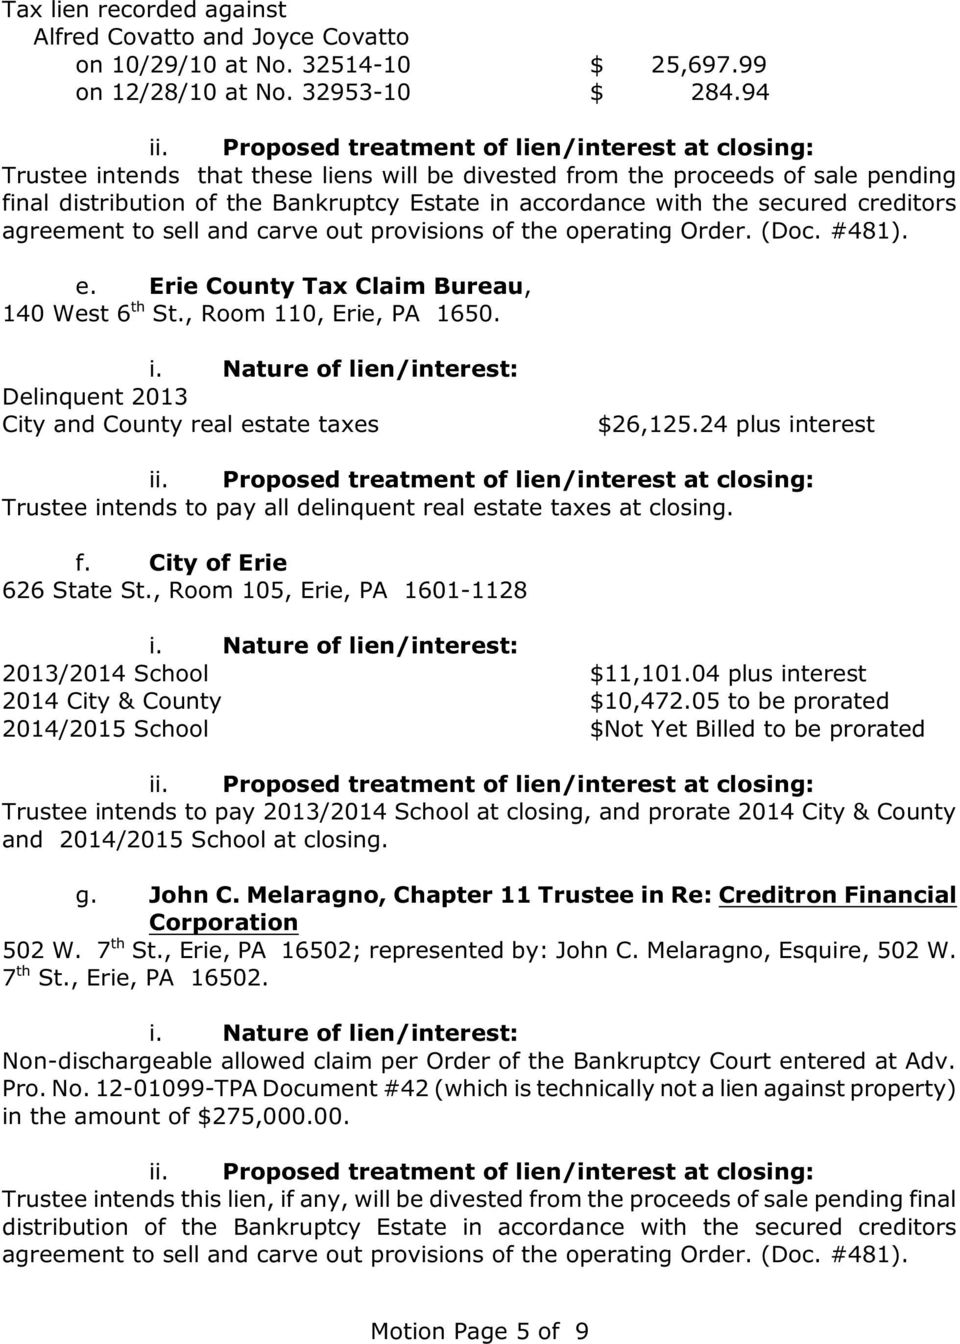 out provisions of the operating Order. (Doc. #481). e. Erie County Tax Claim Bureau, 140 West 6 th St., Room 110, Erie, PA 1650. Delinquent 2013 City and County real estate taxes $26,125.